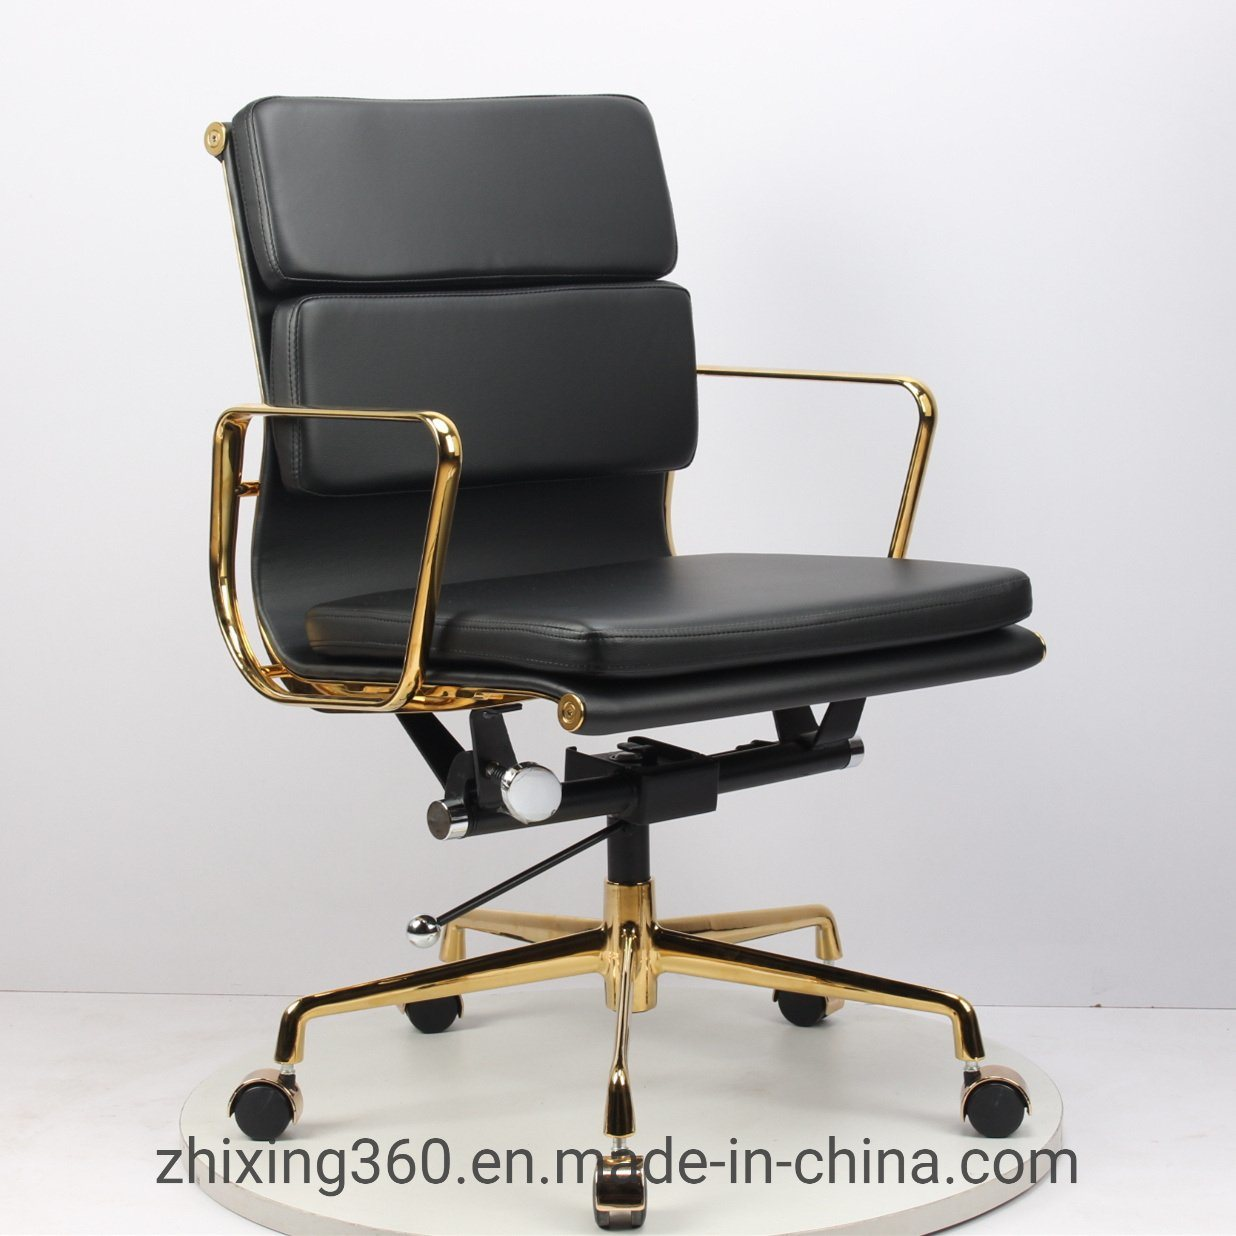 [Hot Item] Eames Office Chair Designer Chair Engraved Classic Gold-Plated  Office Swivel Chair Leather Boutique